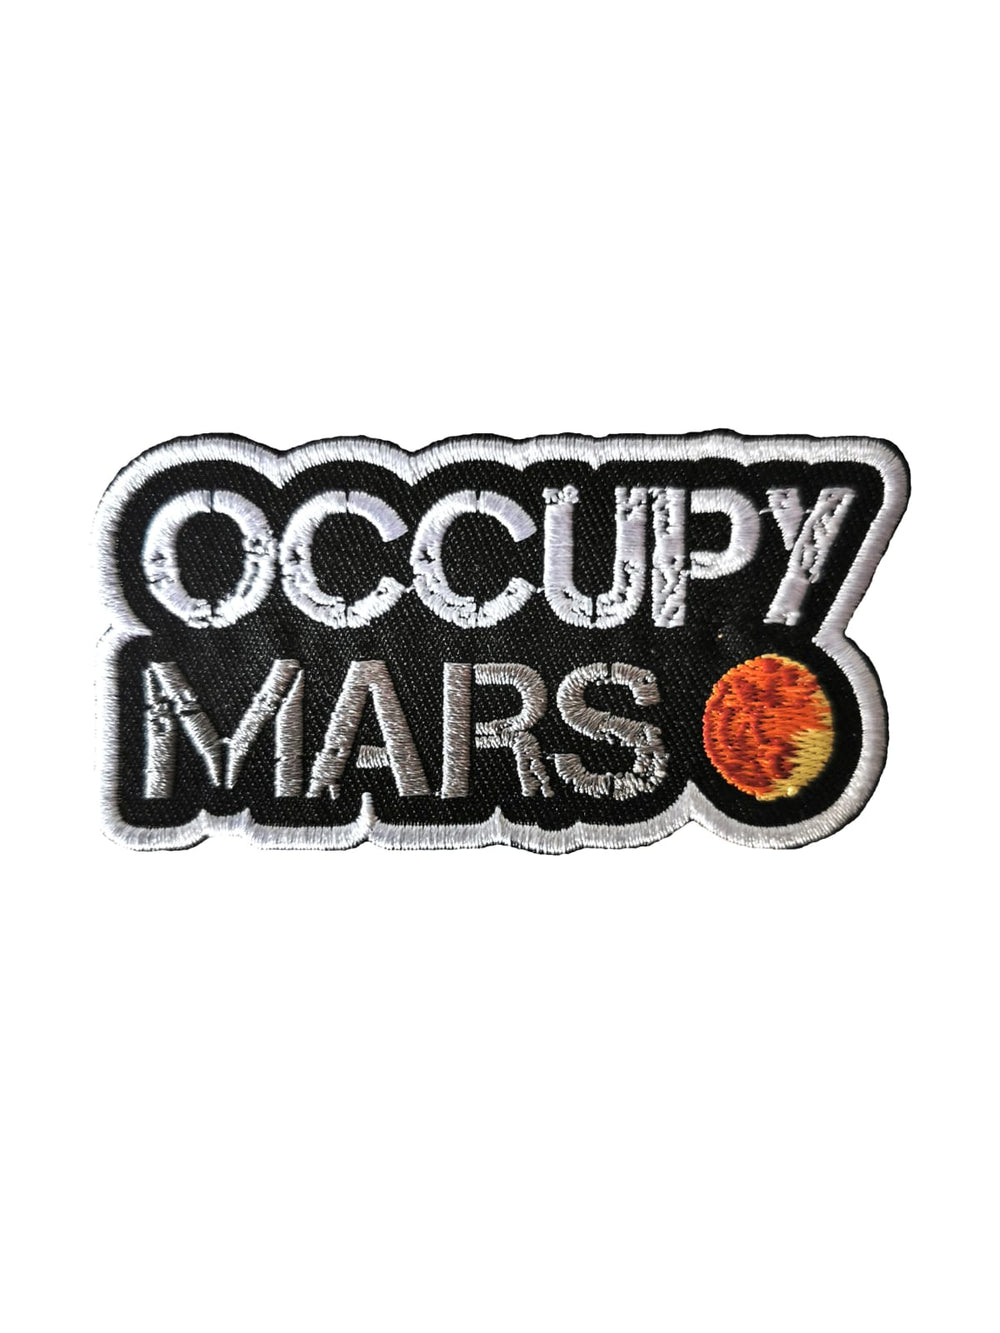 Occupy Mars Patch - SpaceX Fanstore